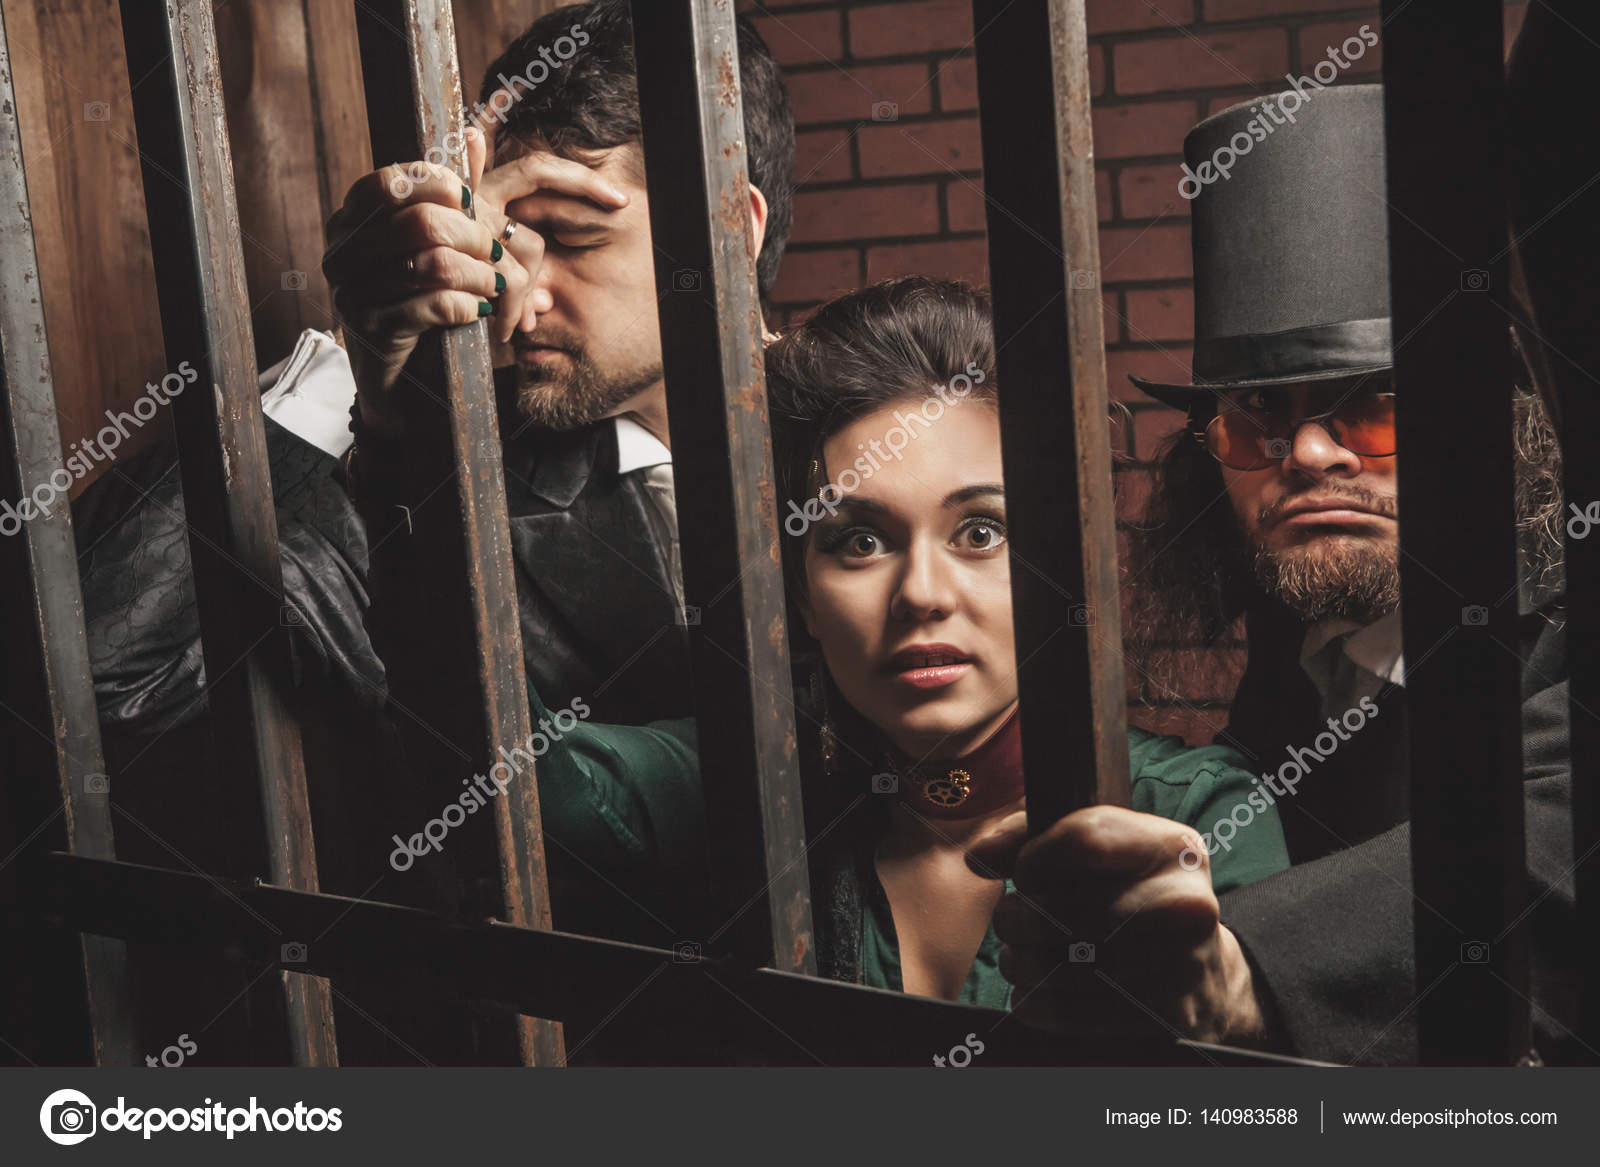 Behind bars two